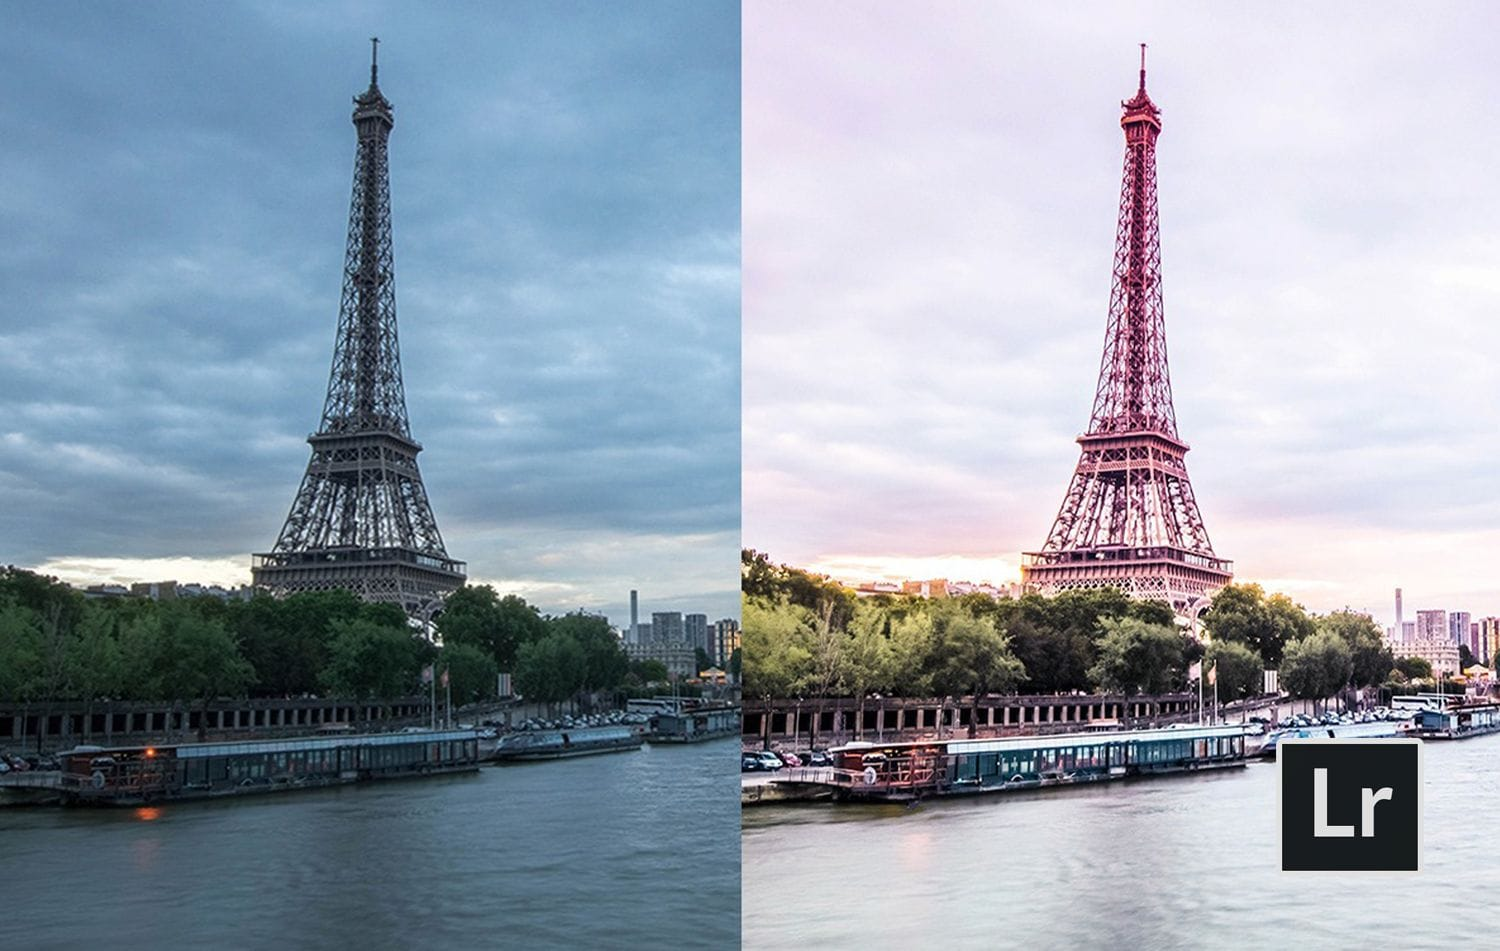 Free-Lightroom-Preset-Over-The-Seine-Before-and-After-ChicPresets.com